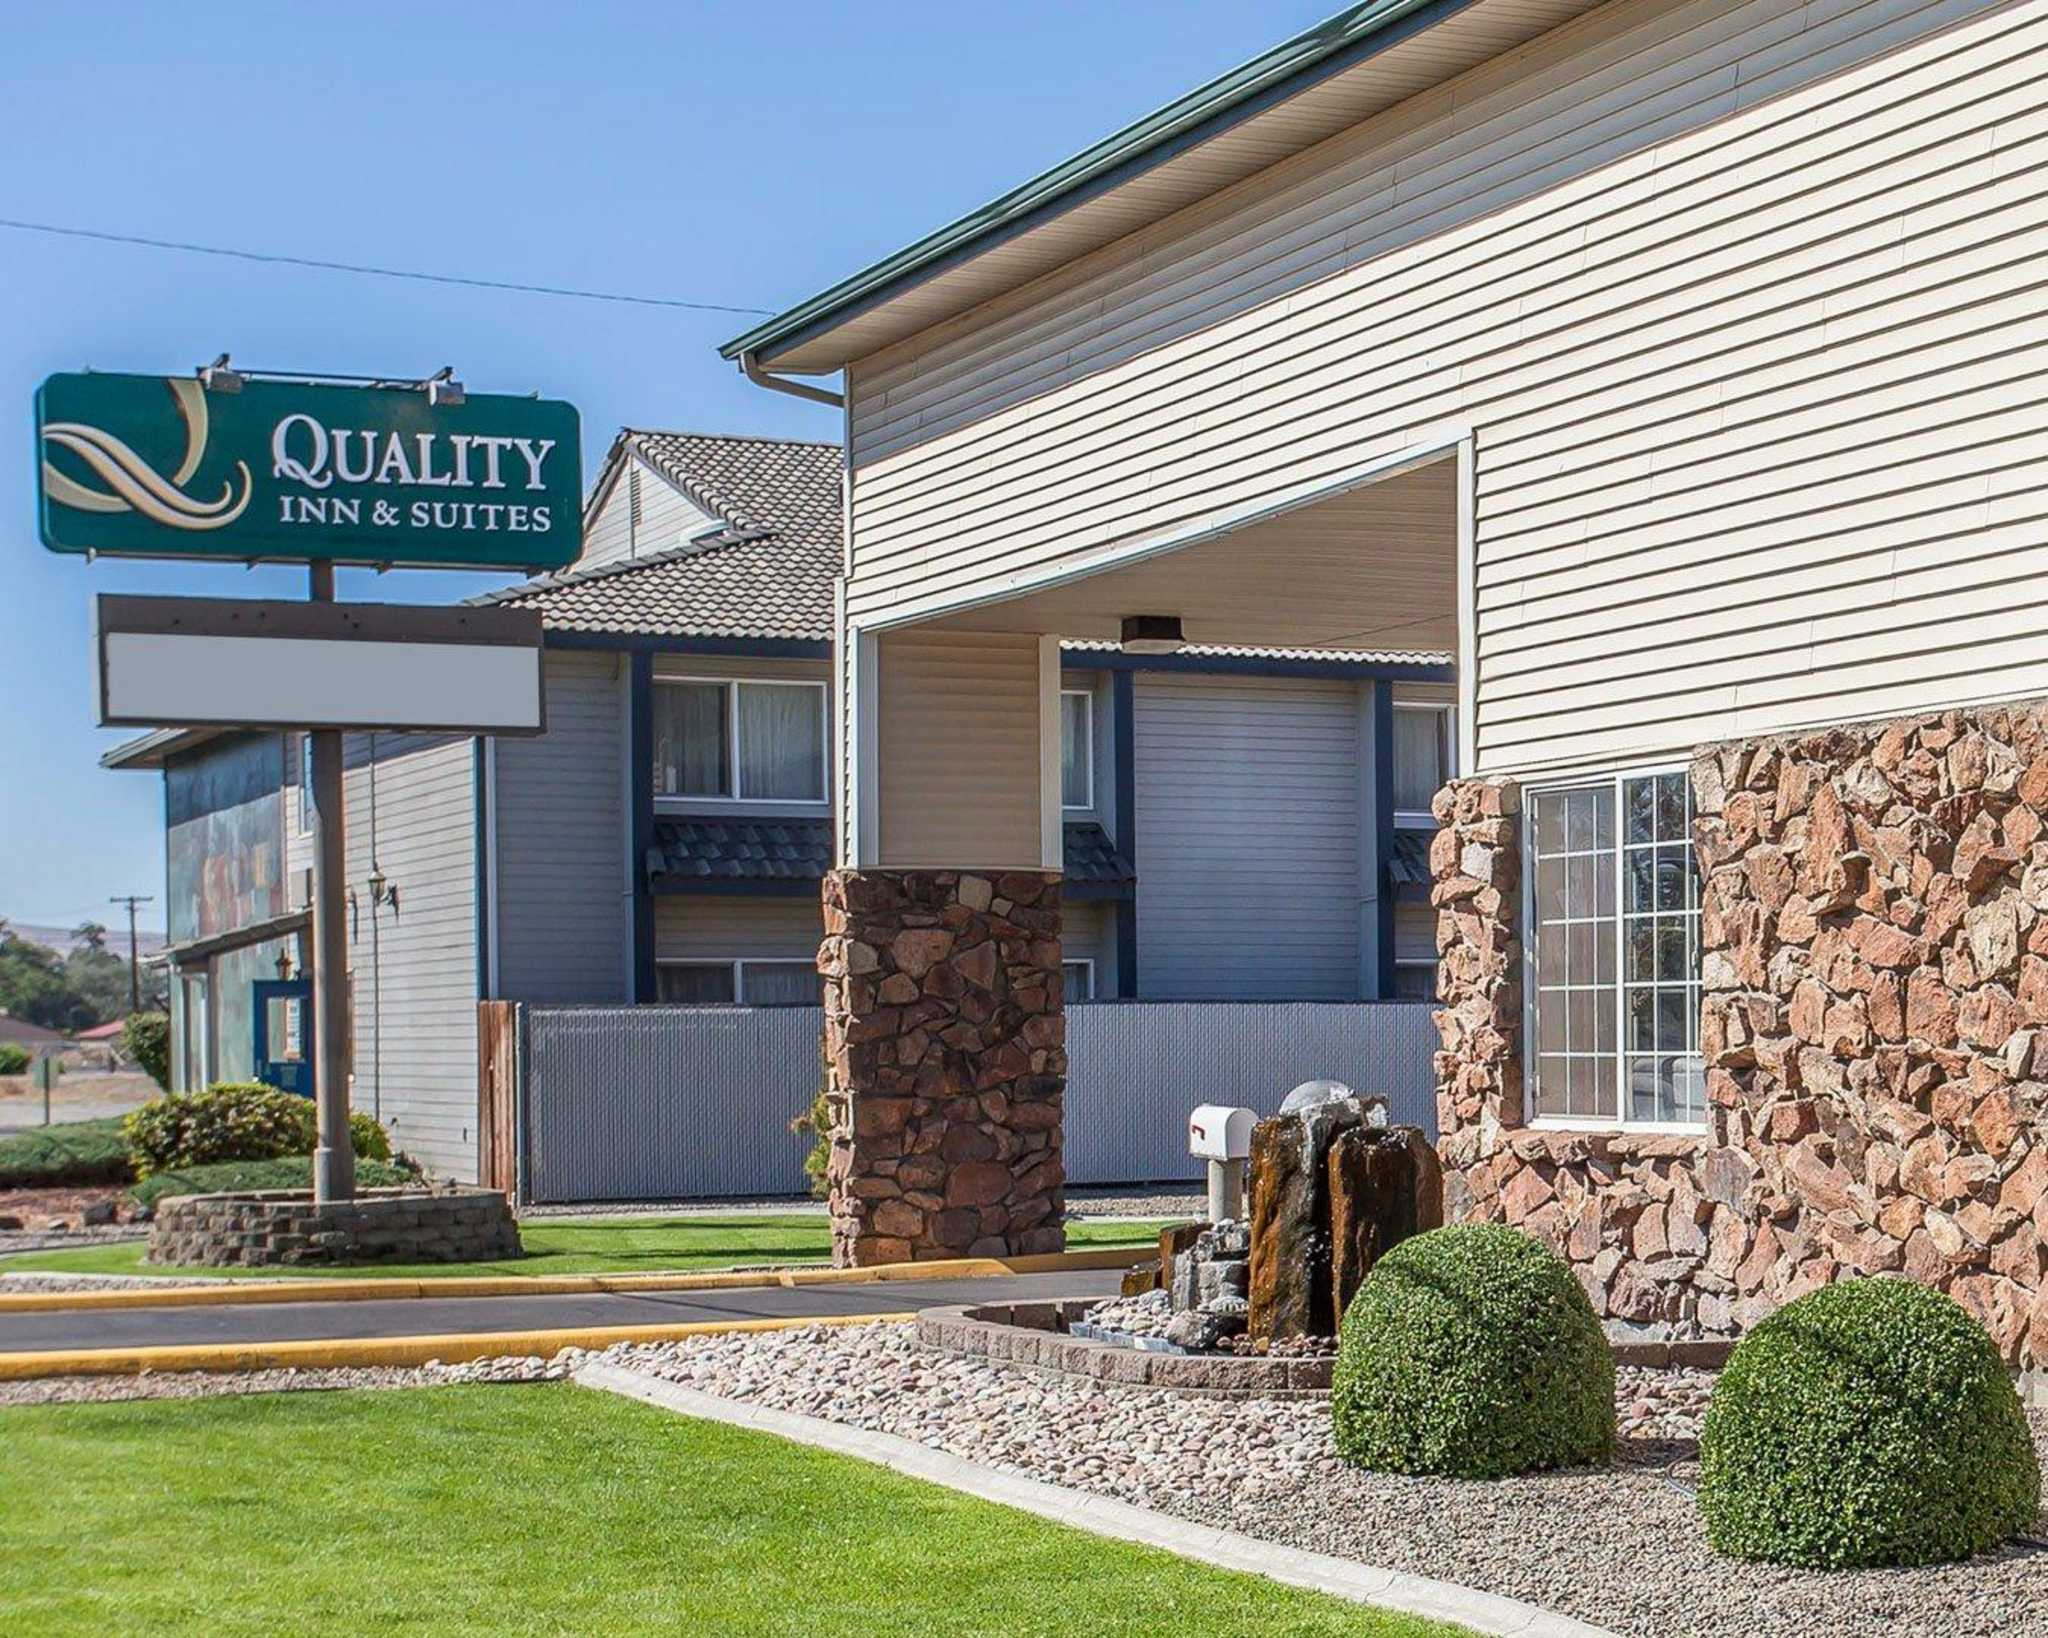 Discount coupons for hotels in yakima wa